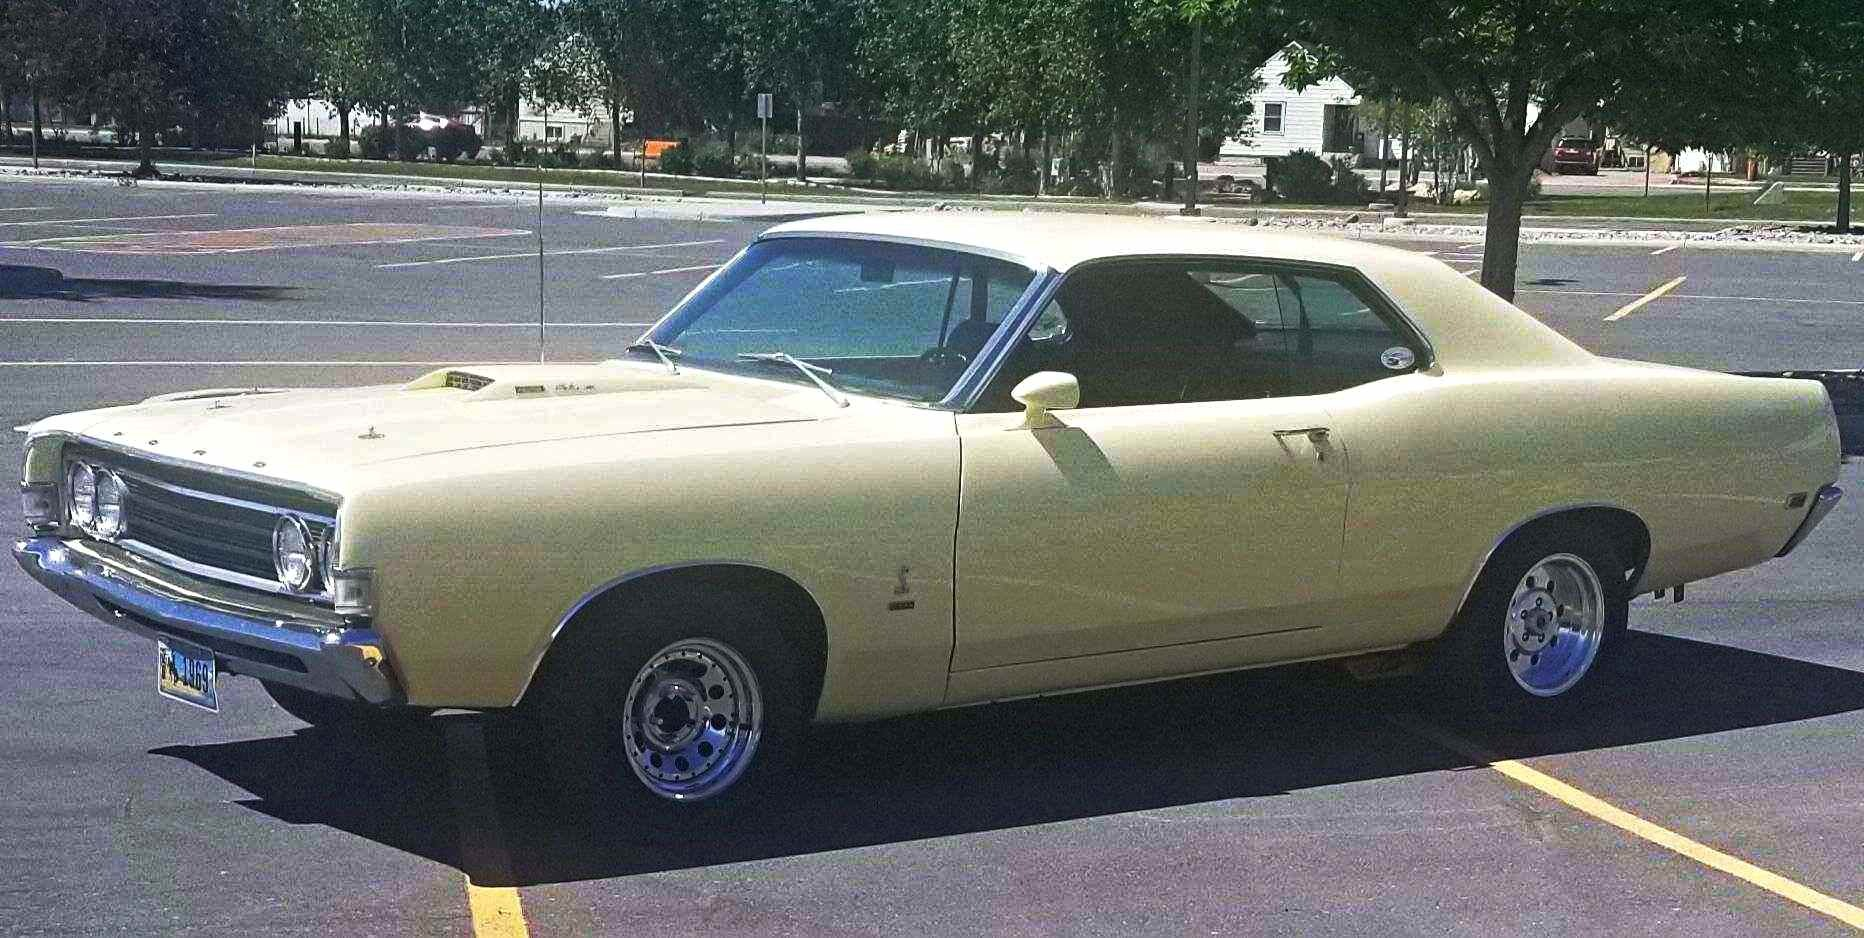 1969 Ford Torino Cobra Jet R-Code with Formal Roof